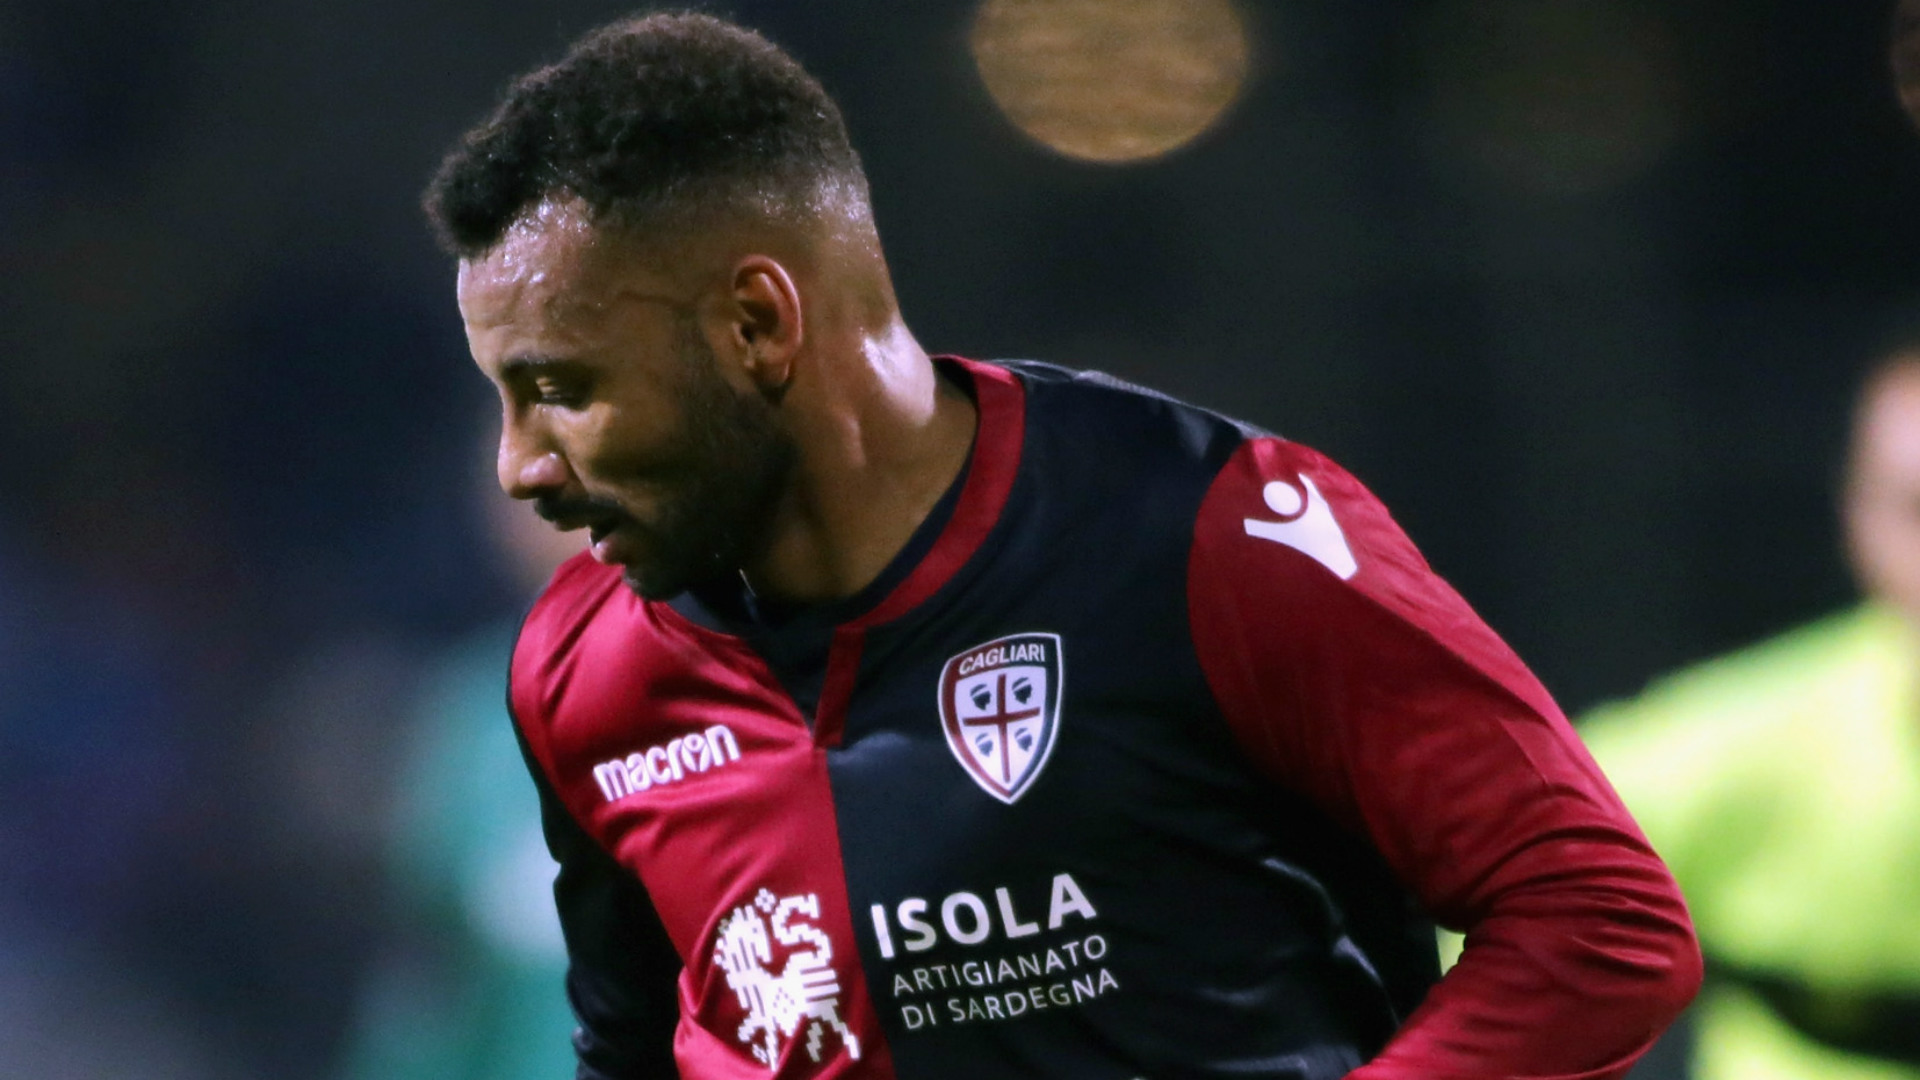 Brazilian striker Joao Pedro scored a second-half equaliser for 10-man Cagliari with their only shot on target to snatch a 1-1 Serie A draw against fancied Sassuolo at the Sardegna Arena on Saturday. An unmarked Pedro side-footed home after excellent work on the left wing by Marko Rog to score his 18th Serie A goal […]